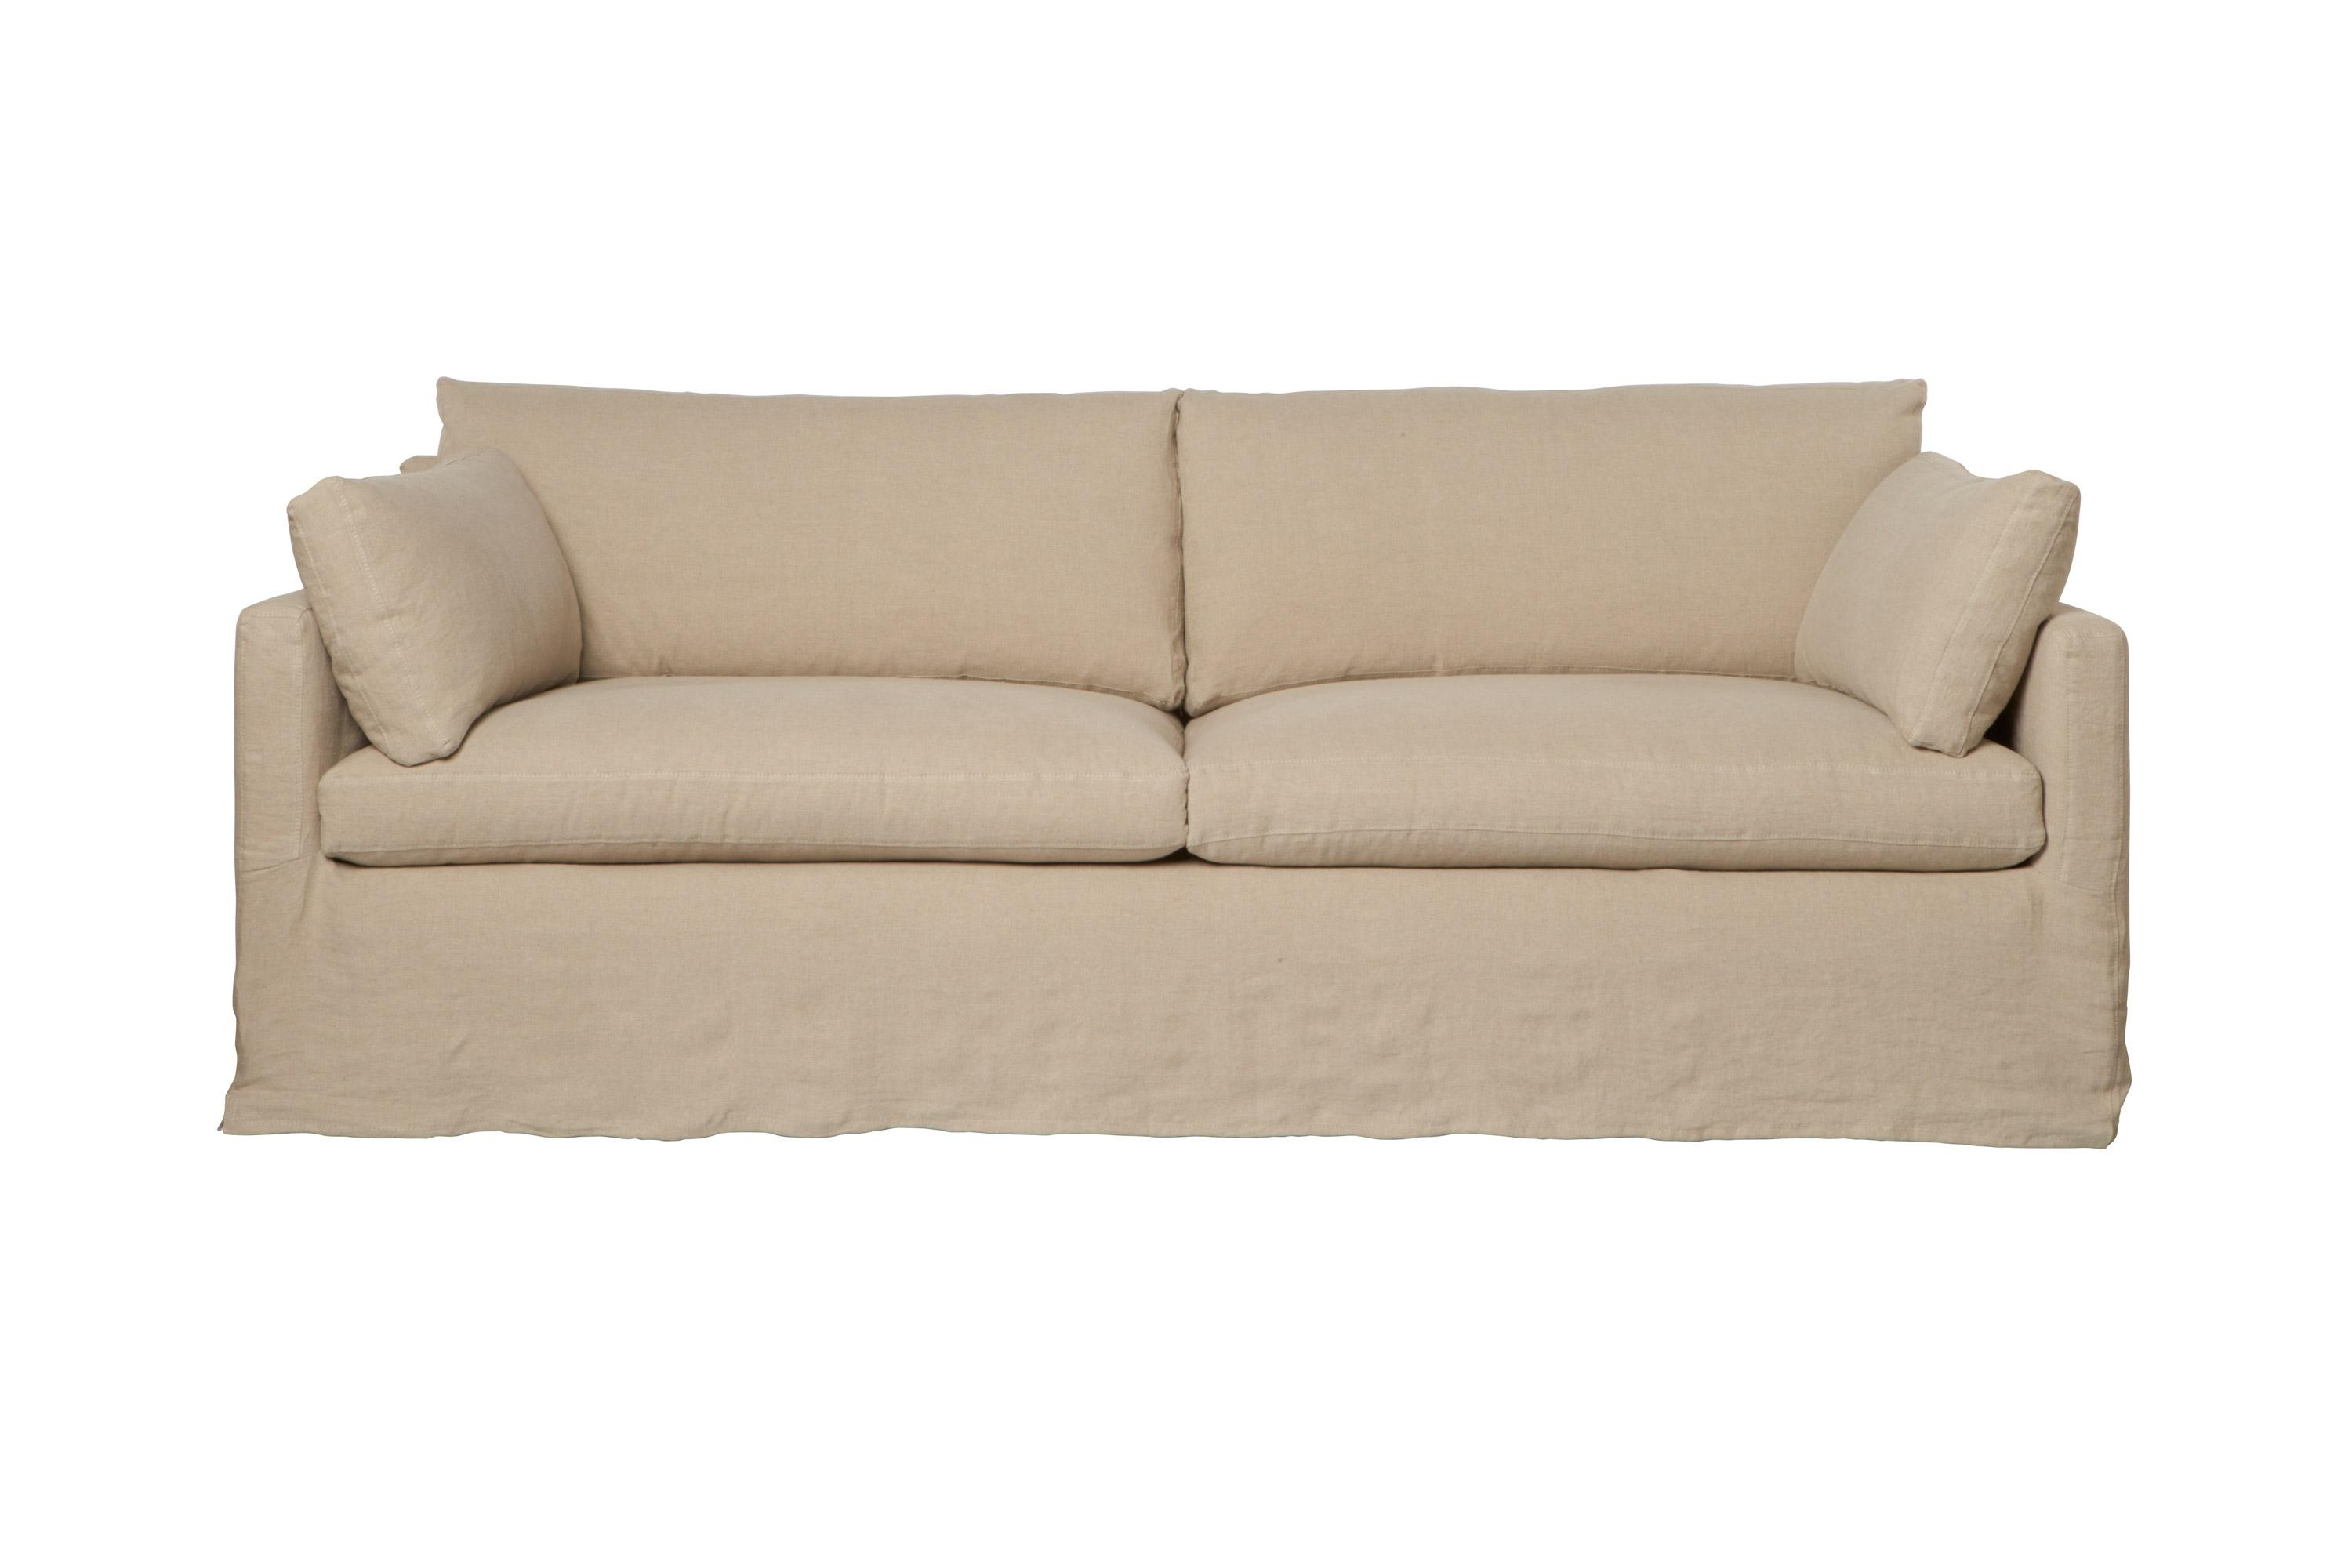 Armless Sofa Slipcover With Inspiration Picture 15747 | Kengire For Armless Sofa Slipcovers (View 13 of 20)